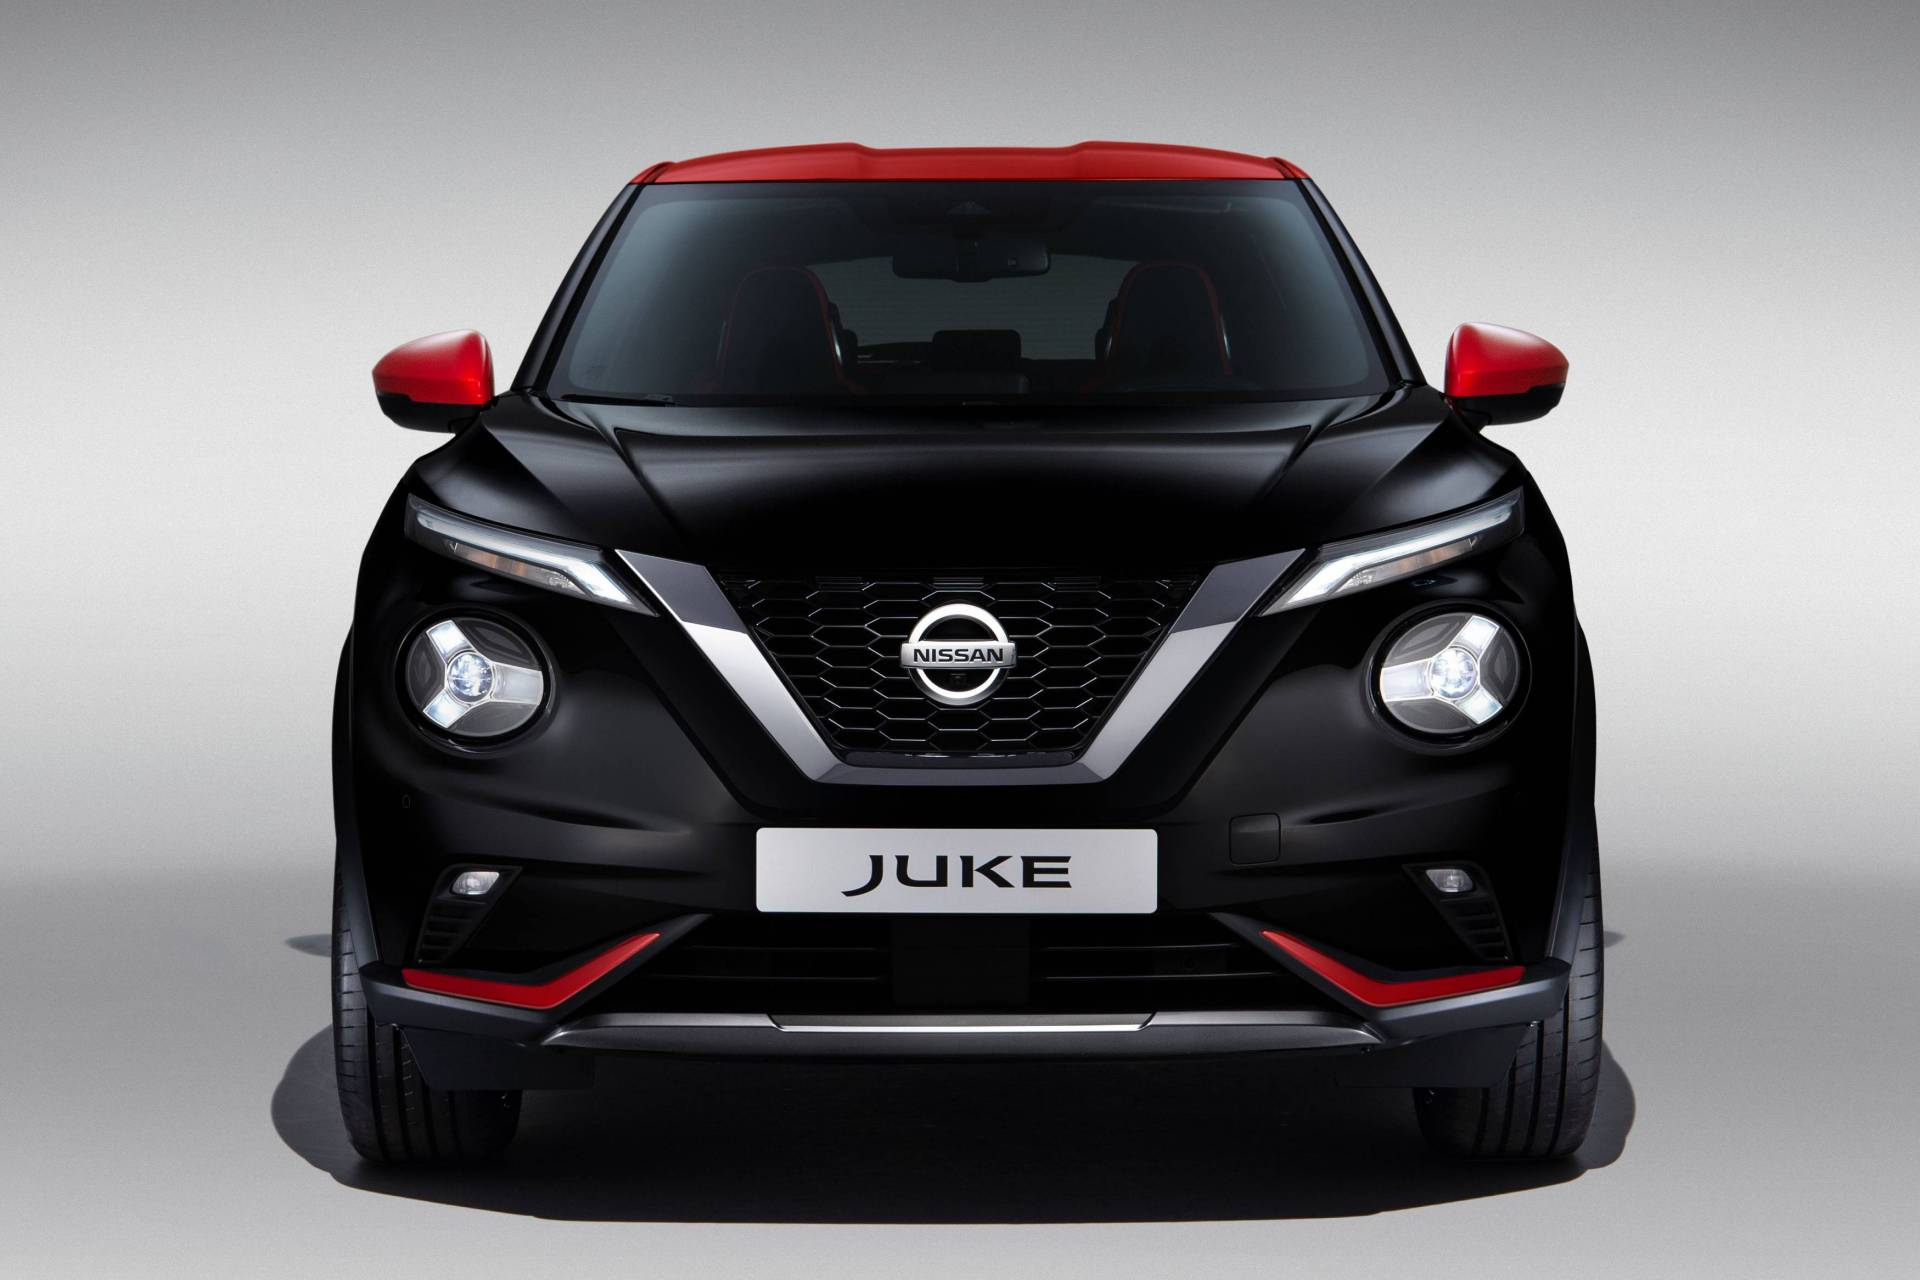 2020 Nissan Juke Priced From 17 395 In Uk 1 875 More Than Outgoing Model Carscoops